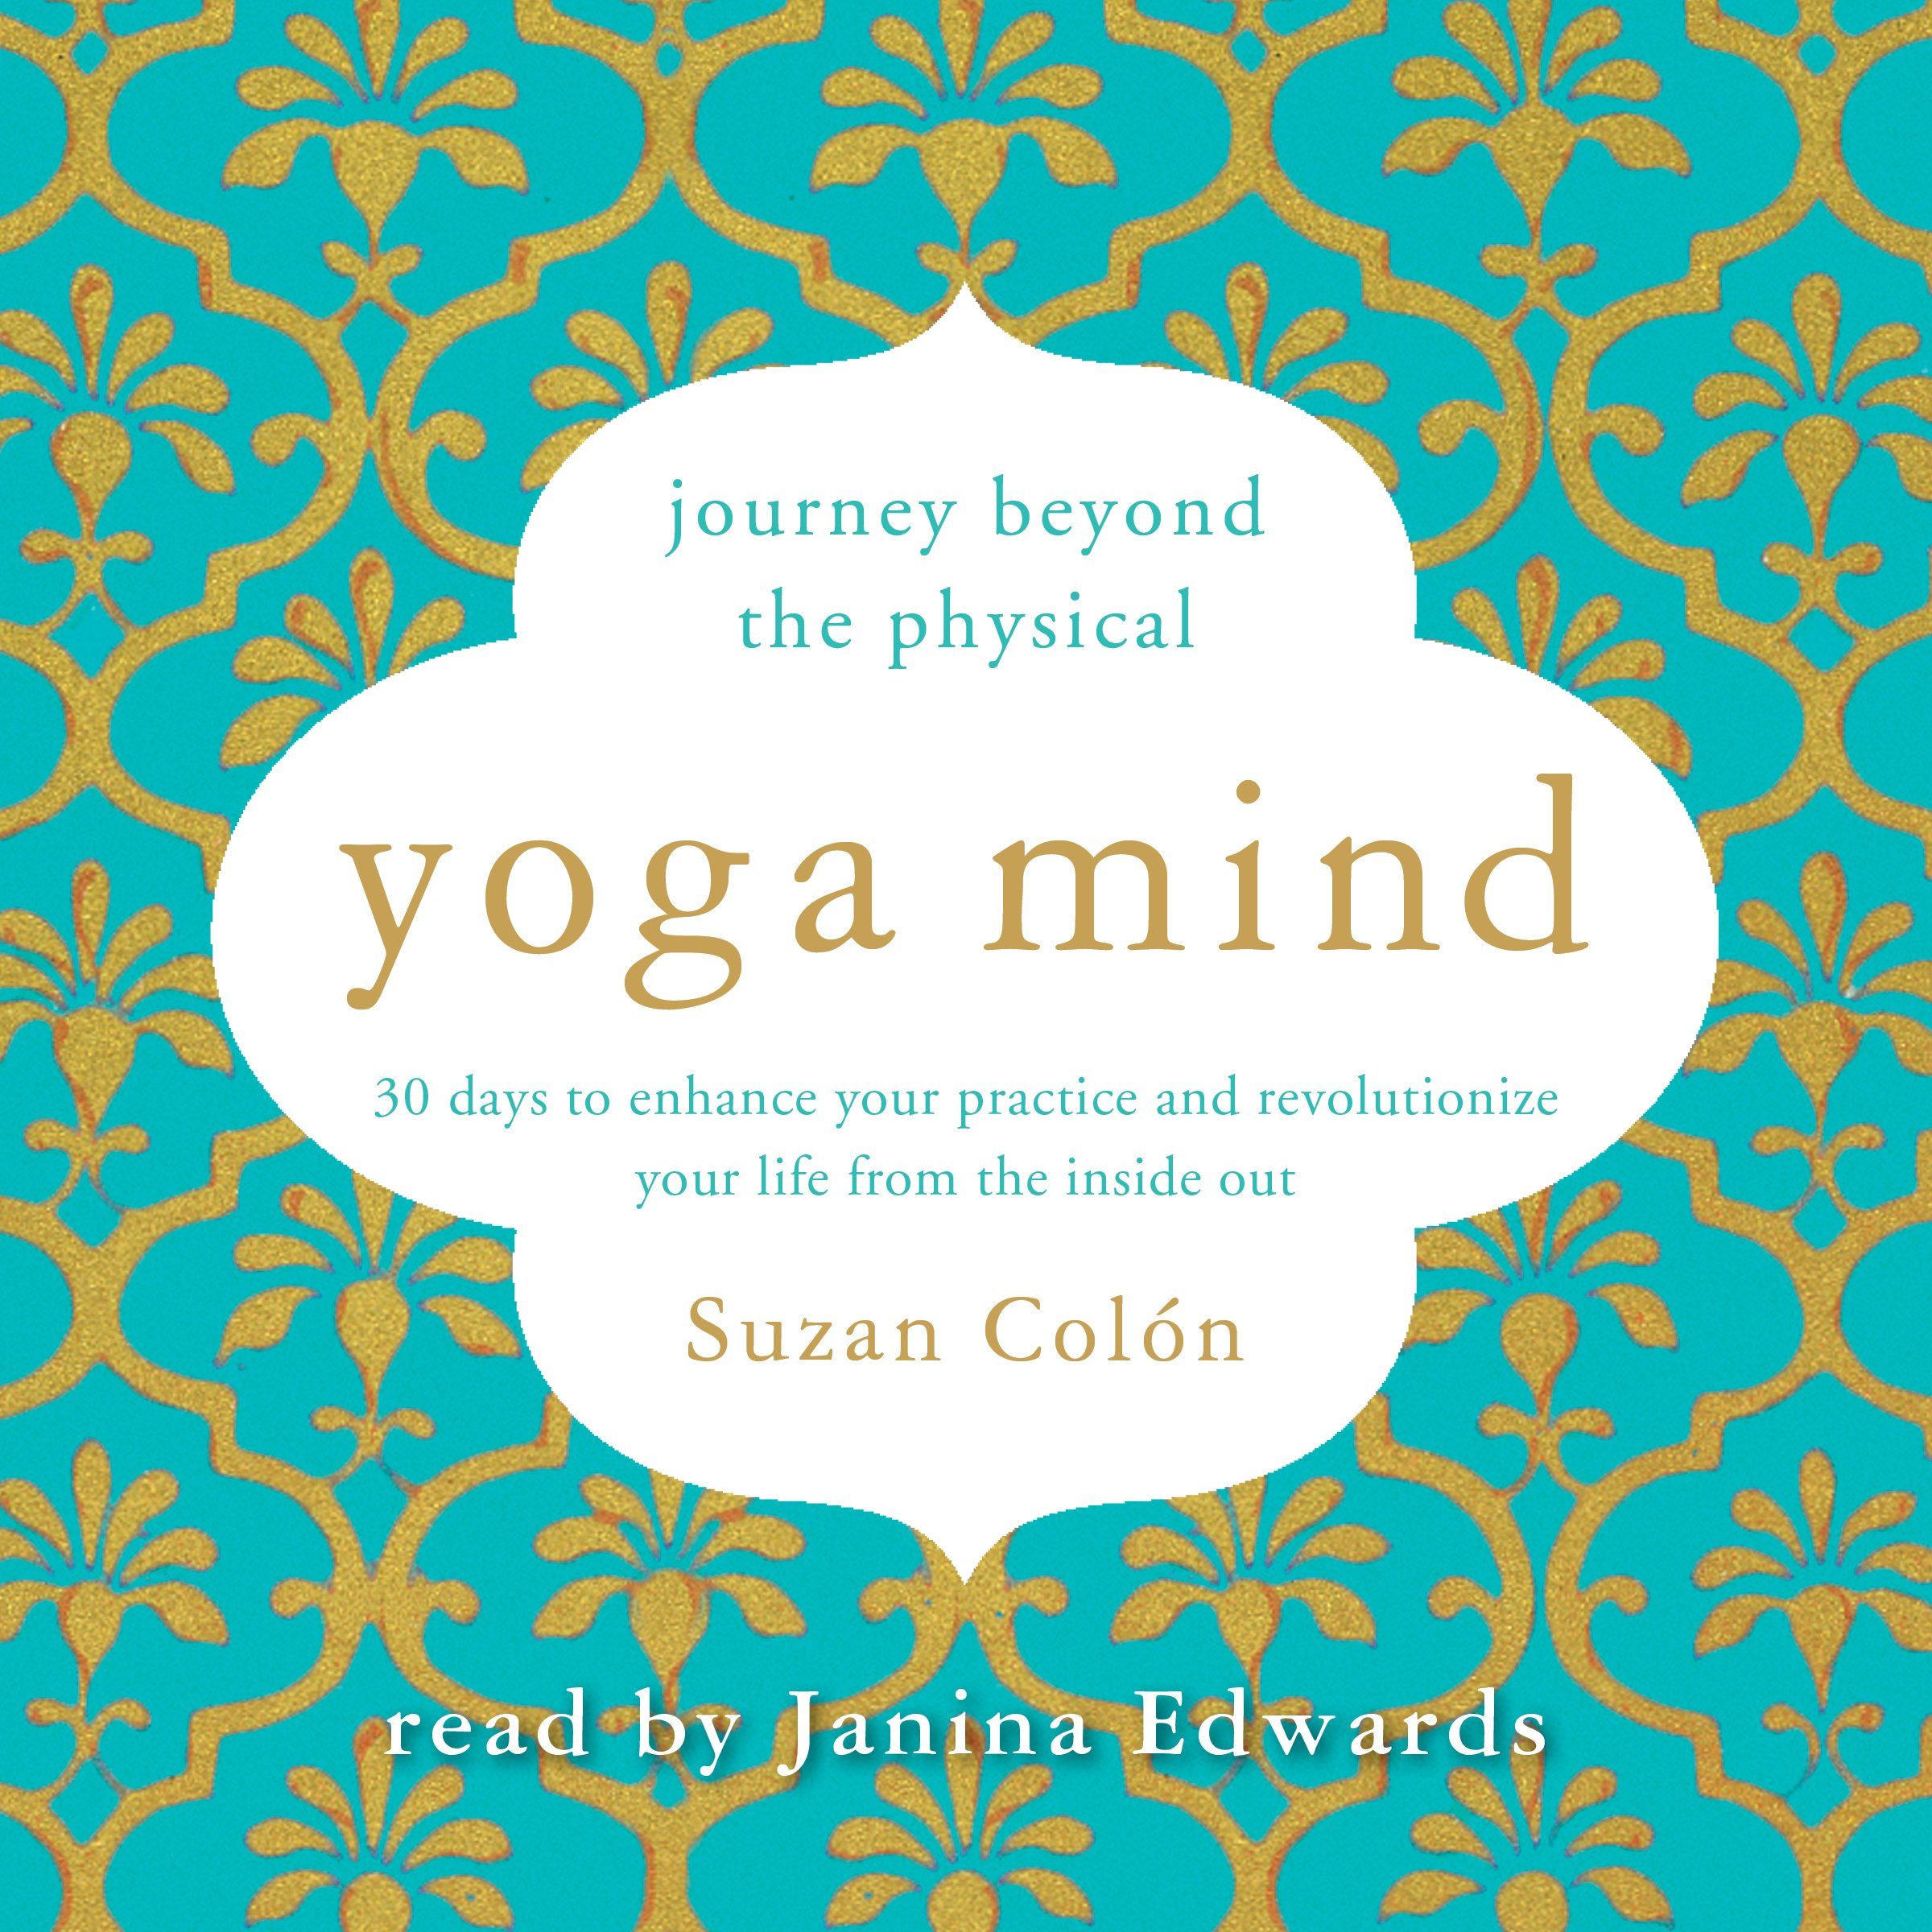 Yoga Mind: Journey Beyond the Physical: 30 Days to Enhance Your Practice and Revolutionize Your Life from the Inside Out